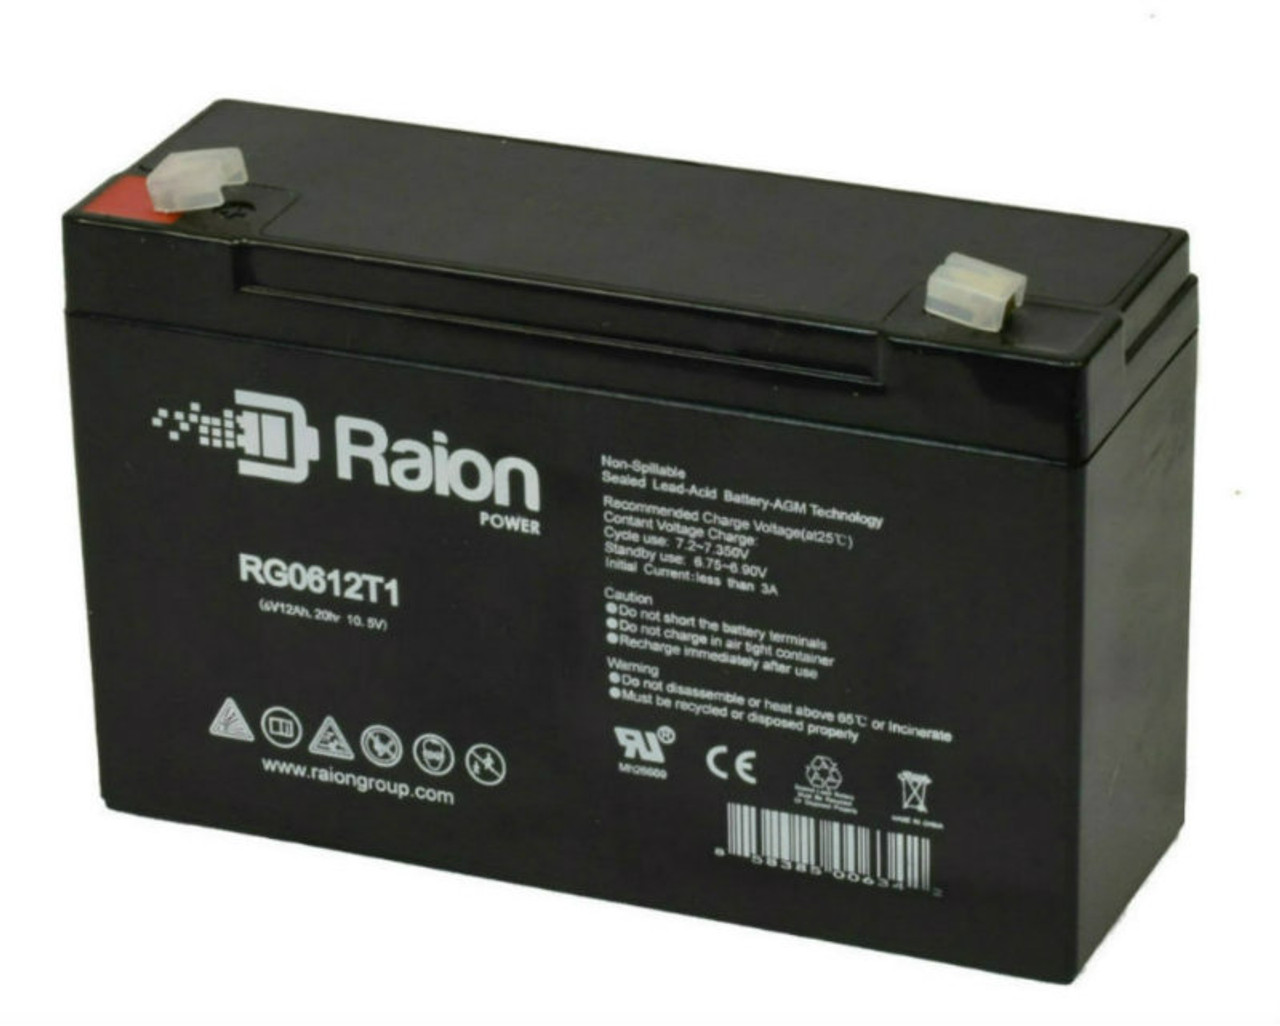 Raion Power RG06120T1 Replacement Battery Pack for Light Alarms TBRC3 emergency light